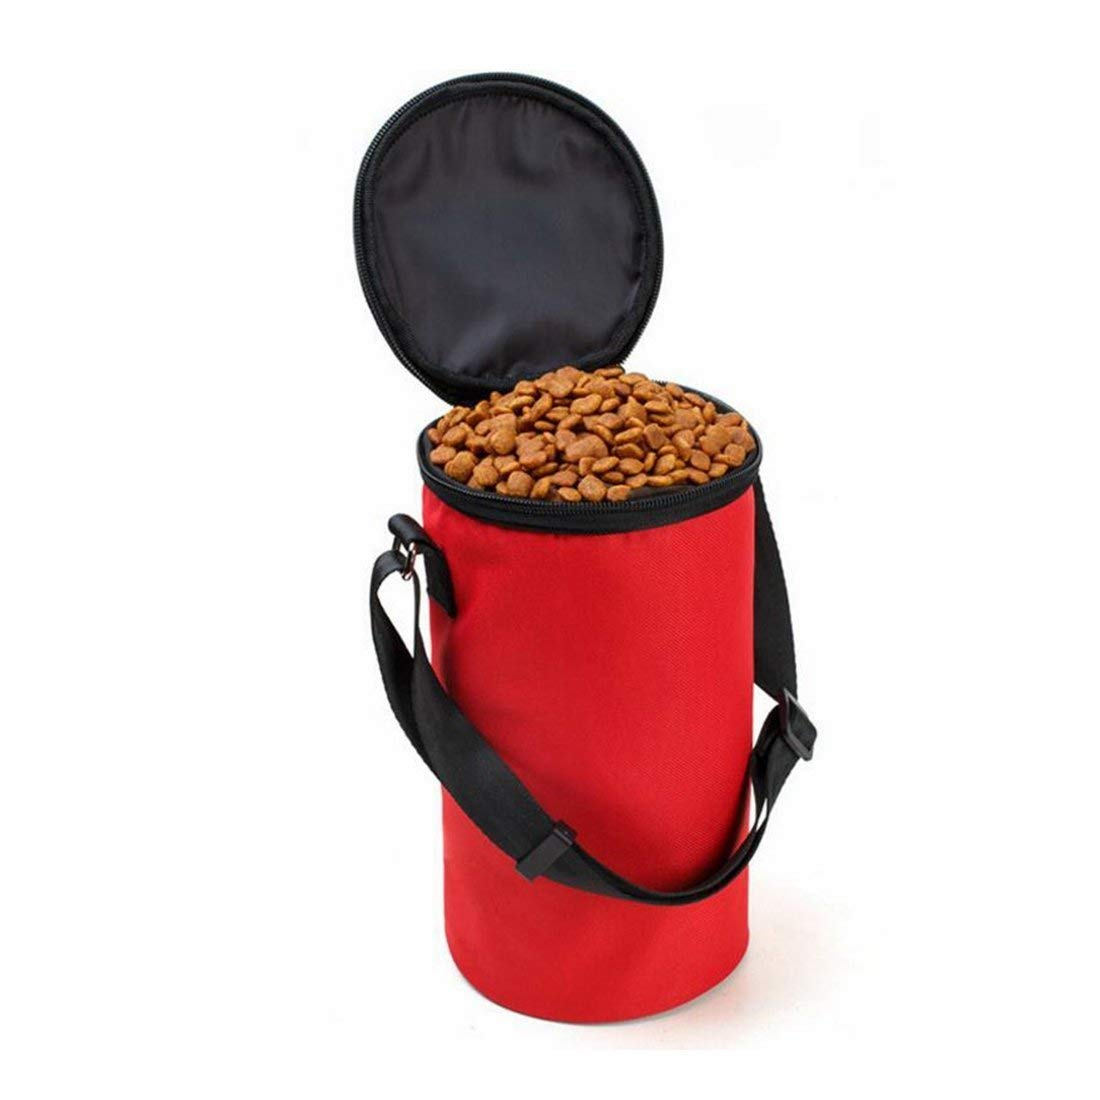 Traveling Portable Dog Food Bag, Collapsible, Strong Wear-Resistant Waterproof Oxford Cloth Pet Bowl Suitable for All Kinds of Pets Such as Teddy Bomei